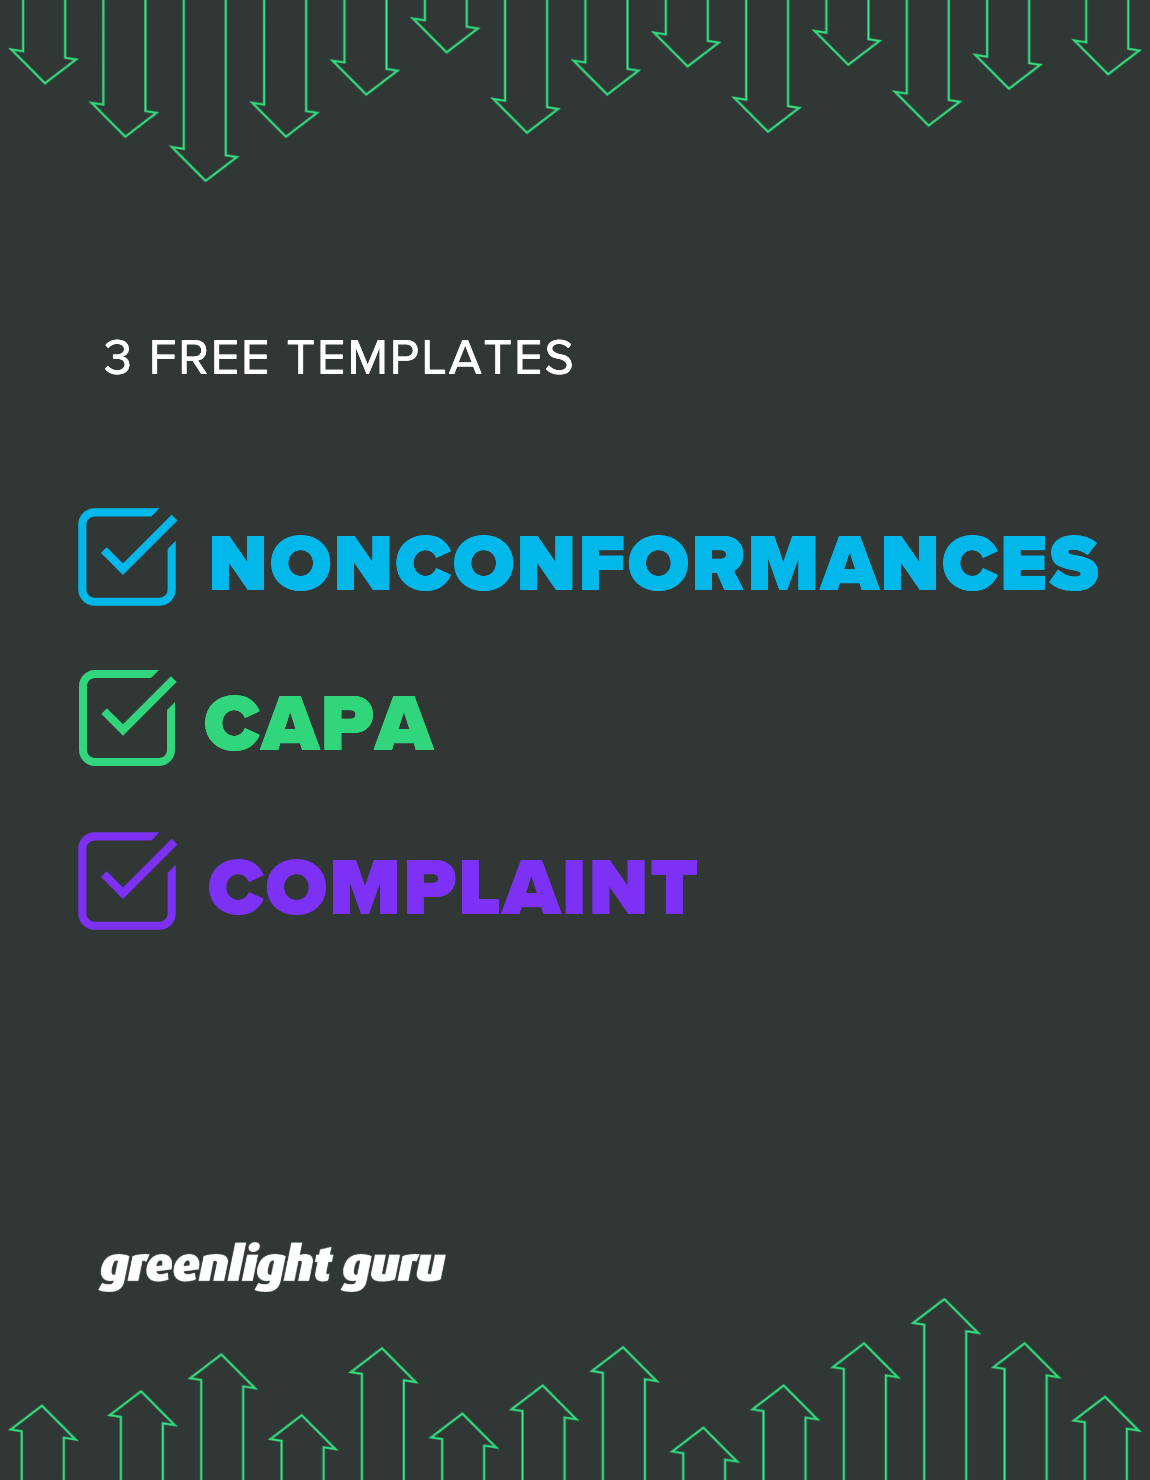 3 Free Templates for NC, CAPA, Complaints slide-in cover